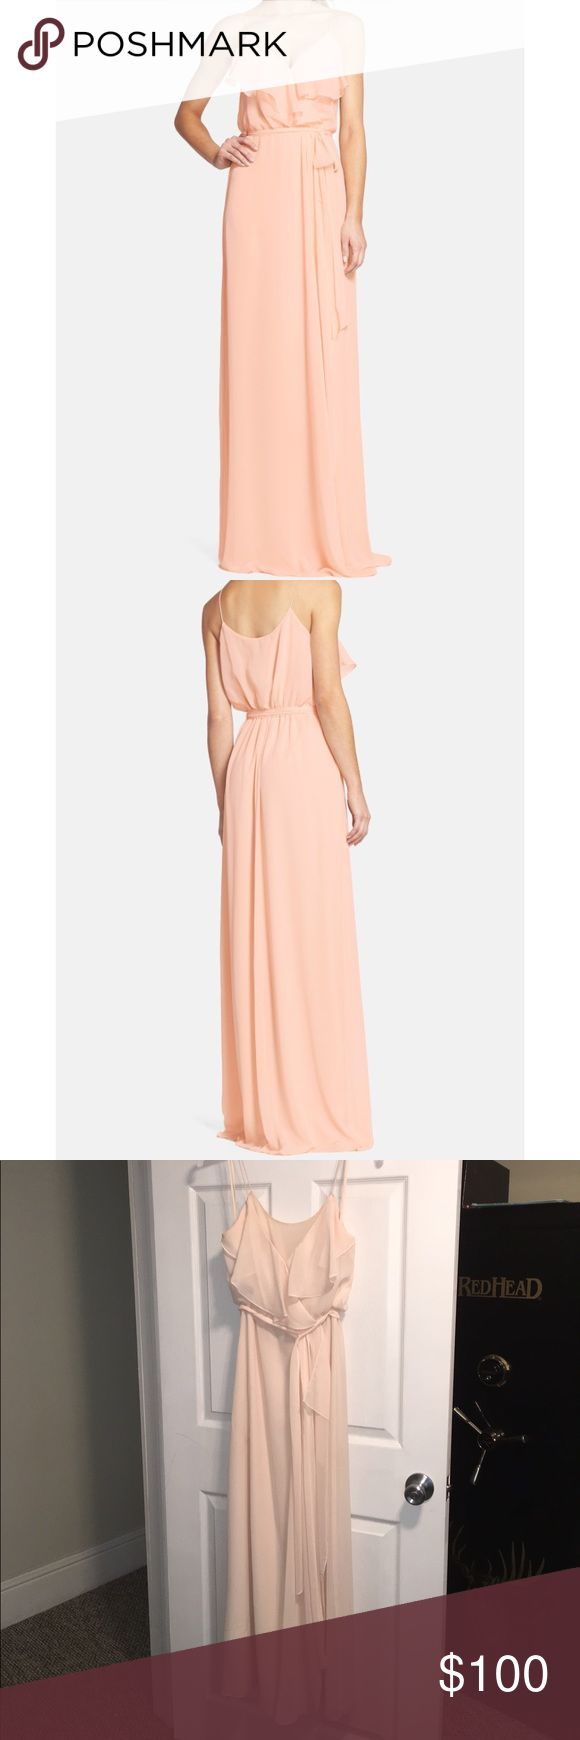 """Ruffle Front Chiffon Gown Soft and romantic, this blush-hued gown in silky chiffon flows gently from the spaghetti straps to a floor-grazing hem. The ruffled-overlay surplice bodice and wrap-style skirt flatter the figure, while a coordinating tie belt defines feminine curves. Dress was worn once for wedding, alteration only to bottom hem as I am 5""""2' and wore flat shoes. Includes: Deep V-neckline. Wrap-style column skirt. Fully lined. 100% polyester. Nordstrom Dresses Maxi"""